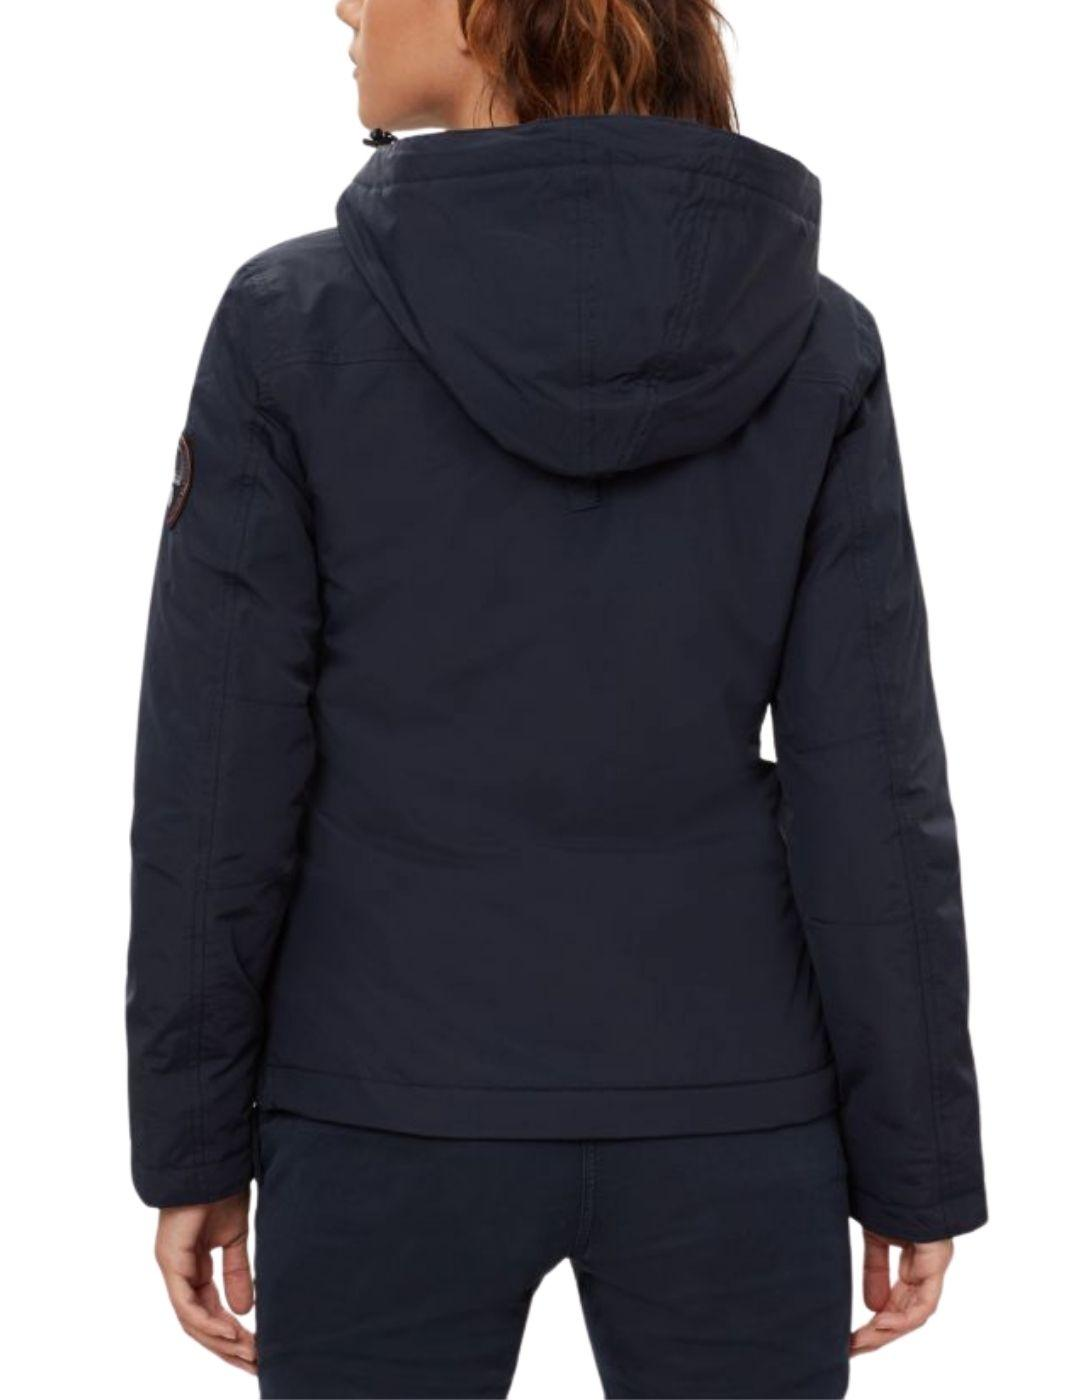 Chaqueta Napapìjri Rainforest Winter Pocket para mujer